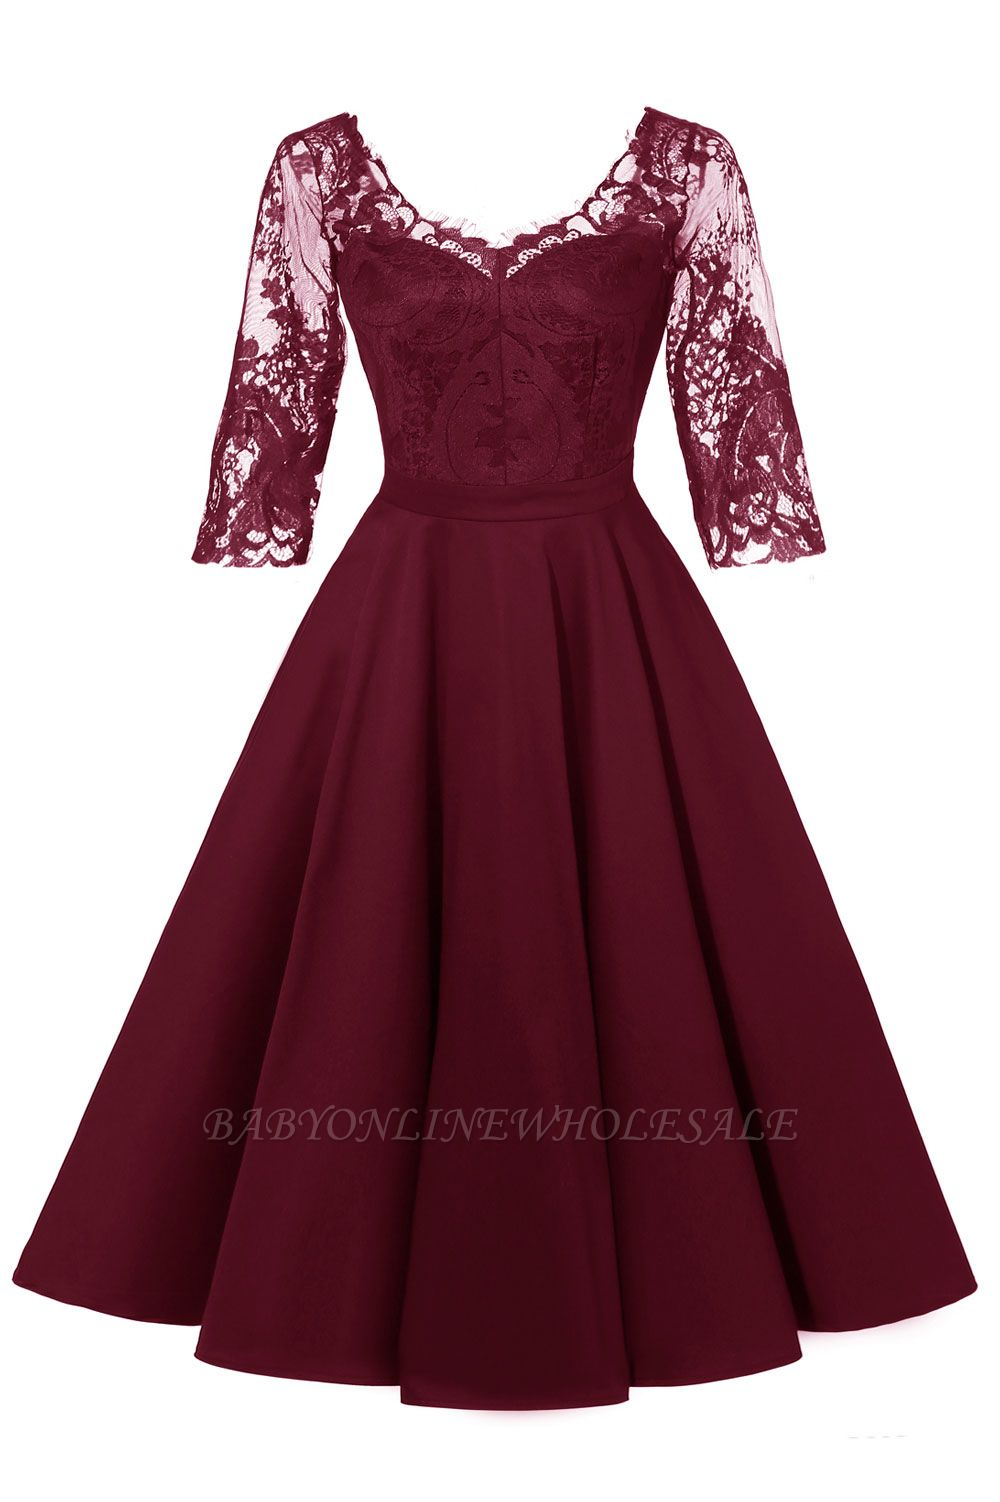 Retro Scoop neck  V-back Lace Dresses with Sleeves | A-line ruffles Burgundy Lace Cocktail Party Dresses